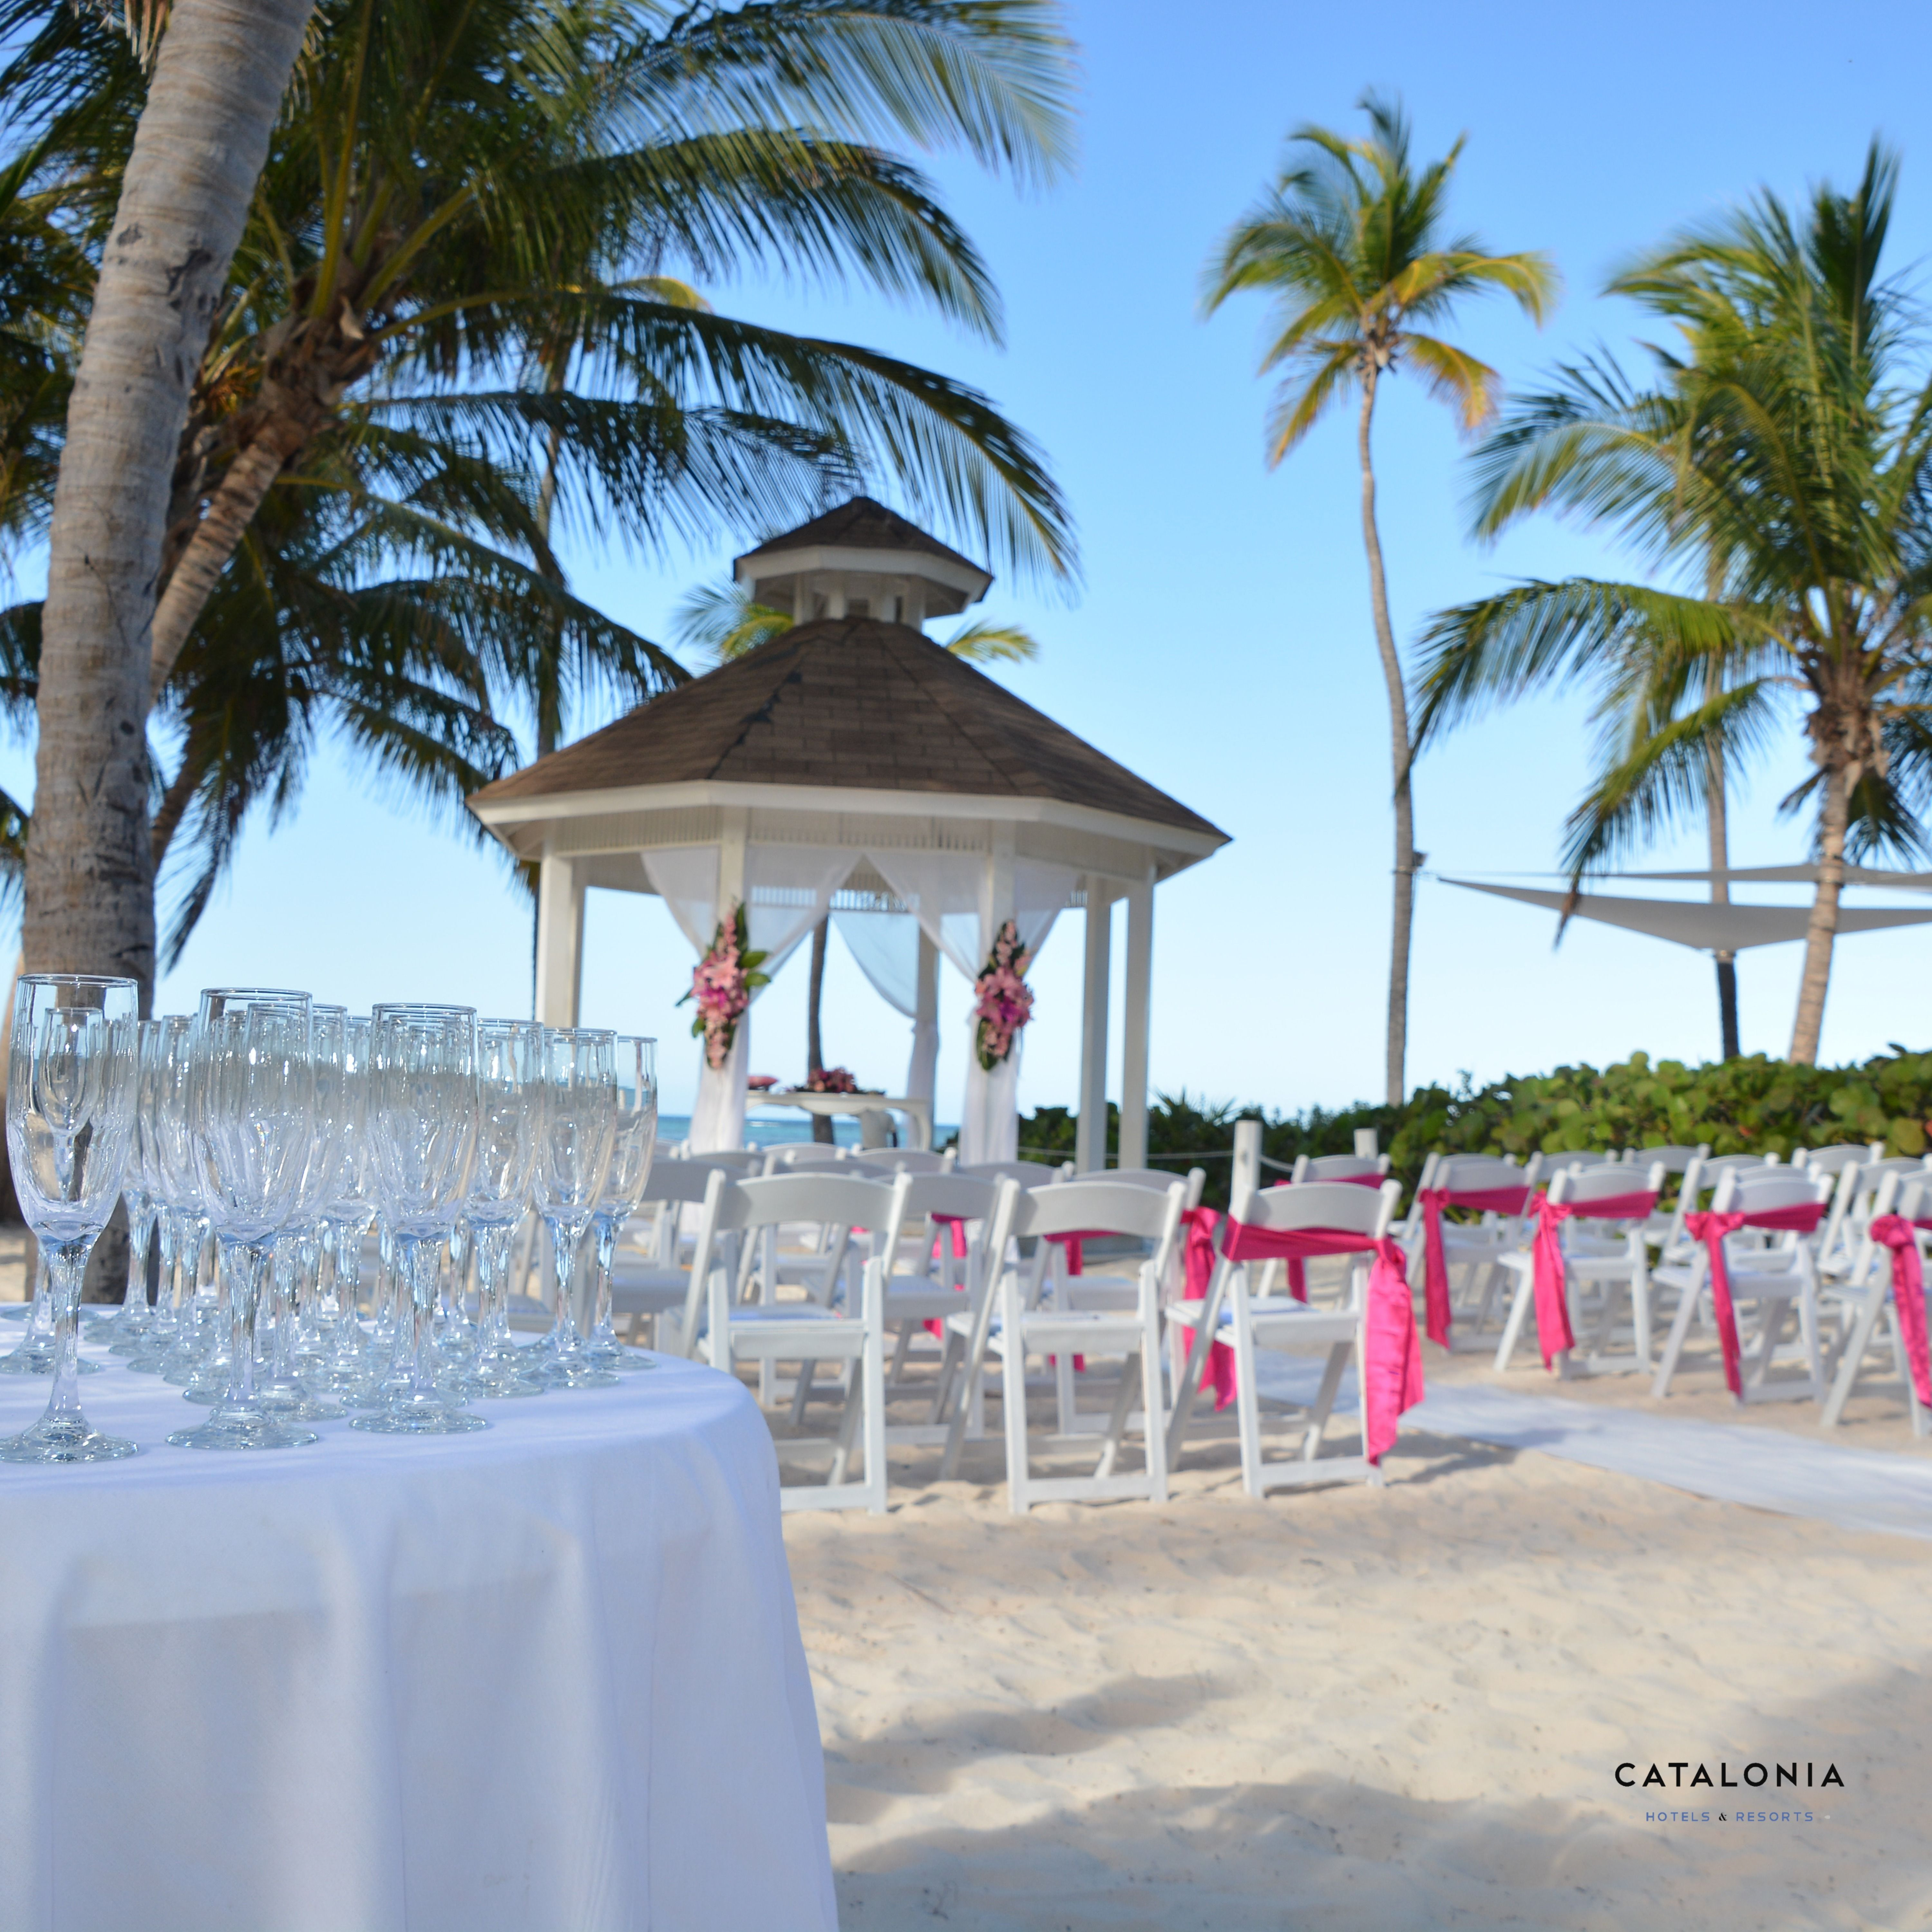 Un brindis por el amor! ~A toast for love!  #Boda #Caribe #Resort #Catalonia #Matrimonio #Amor #Wedding #OneLove #BrideToBe #Cheers #Gazebo #Flower #Couple